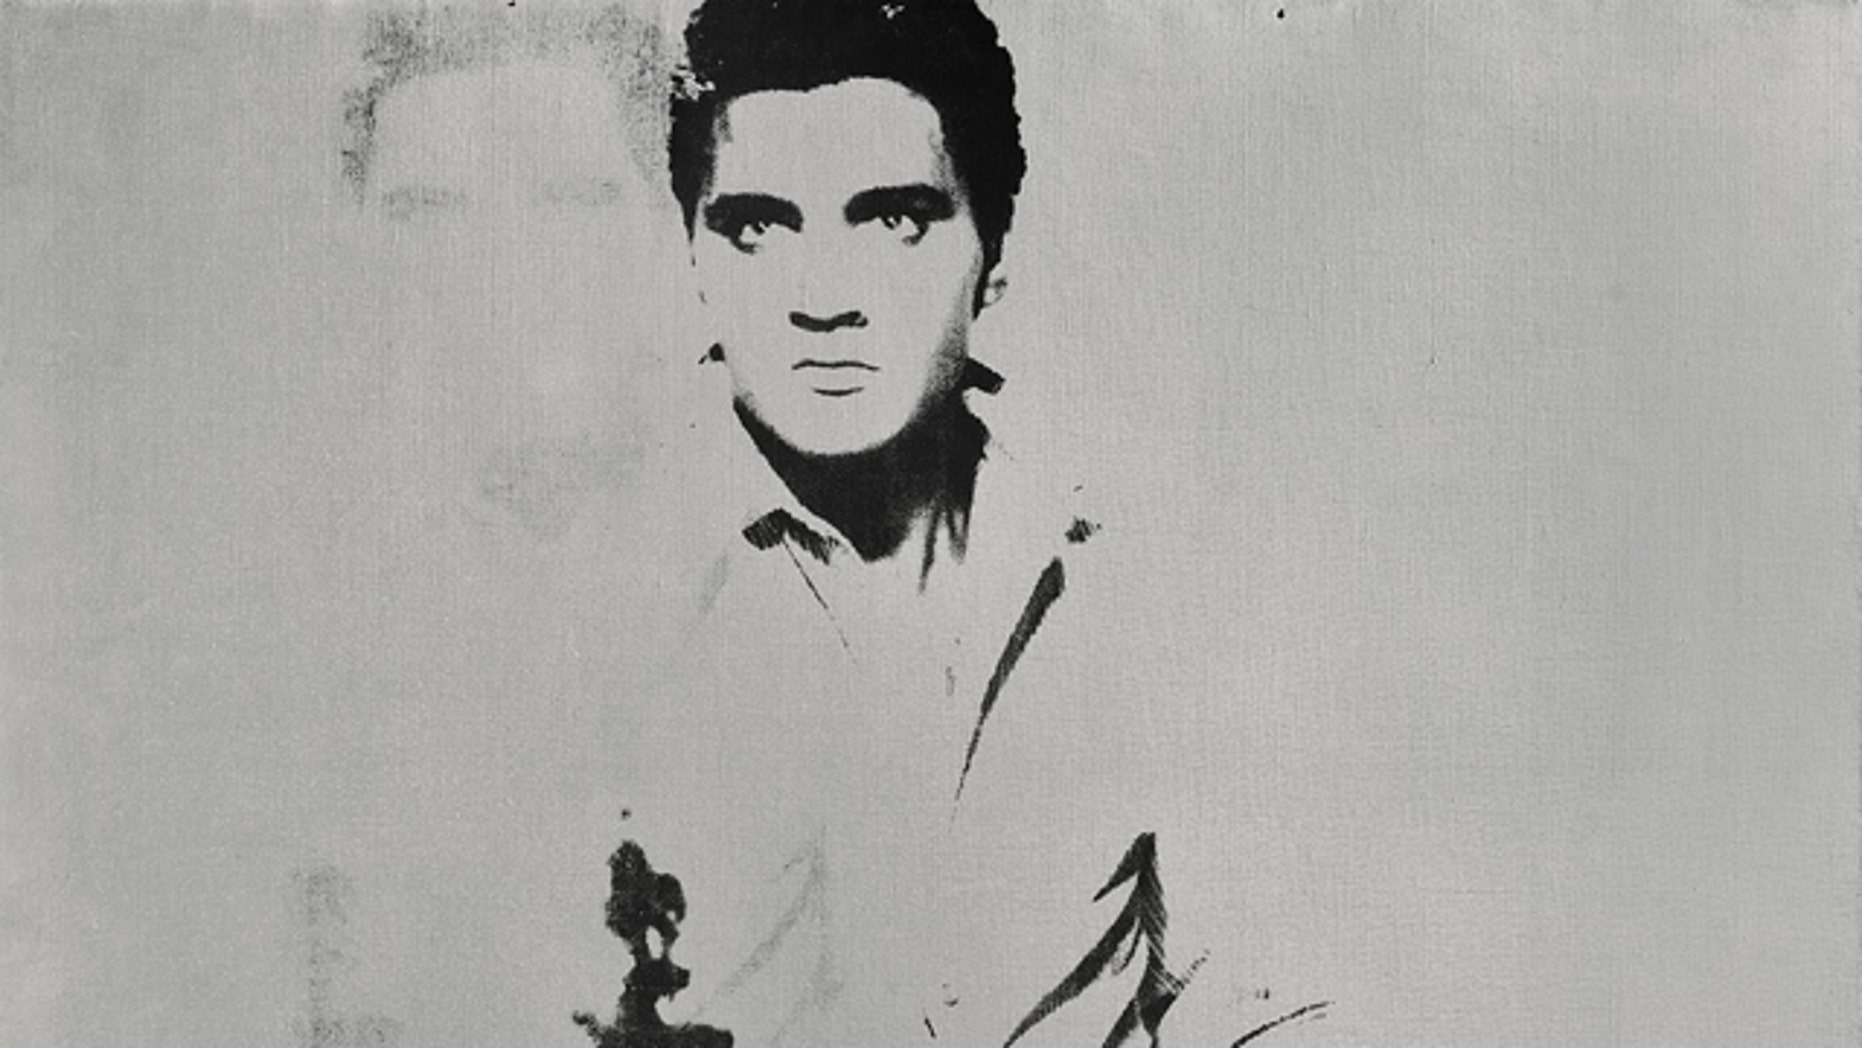 FILE - This undated image provided by Sotheby's shows Andy Warhol's portrait of Elvis Presley depicted as a cowboy. The painting, with a silver background, Double Elvis [Ferus Type] is estimated to sell for between $30 million to $50 million at Sothebys in New York on Wednesday May 9, 2012.